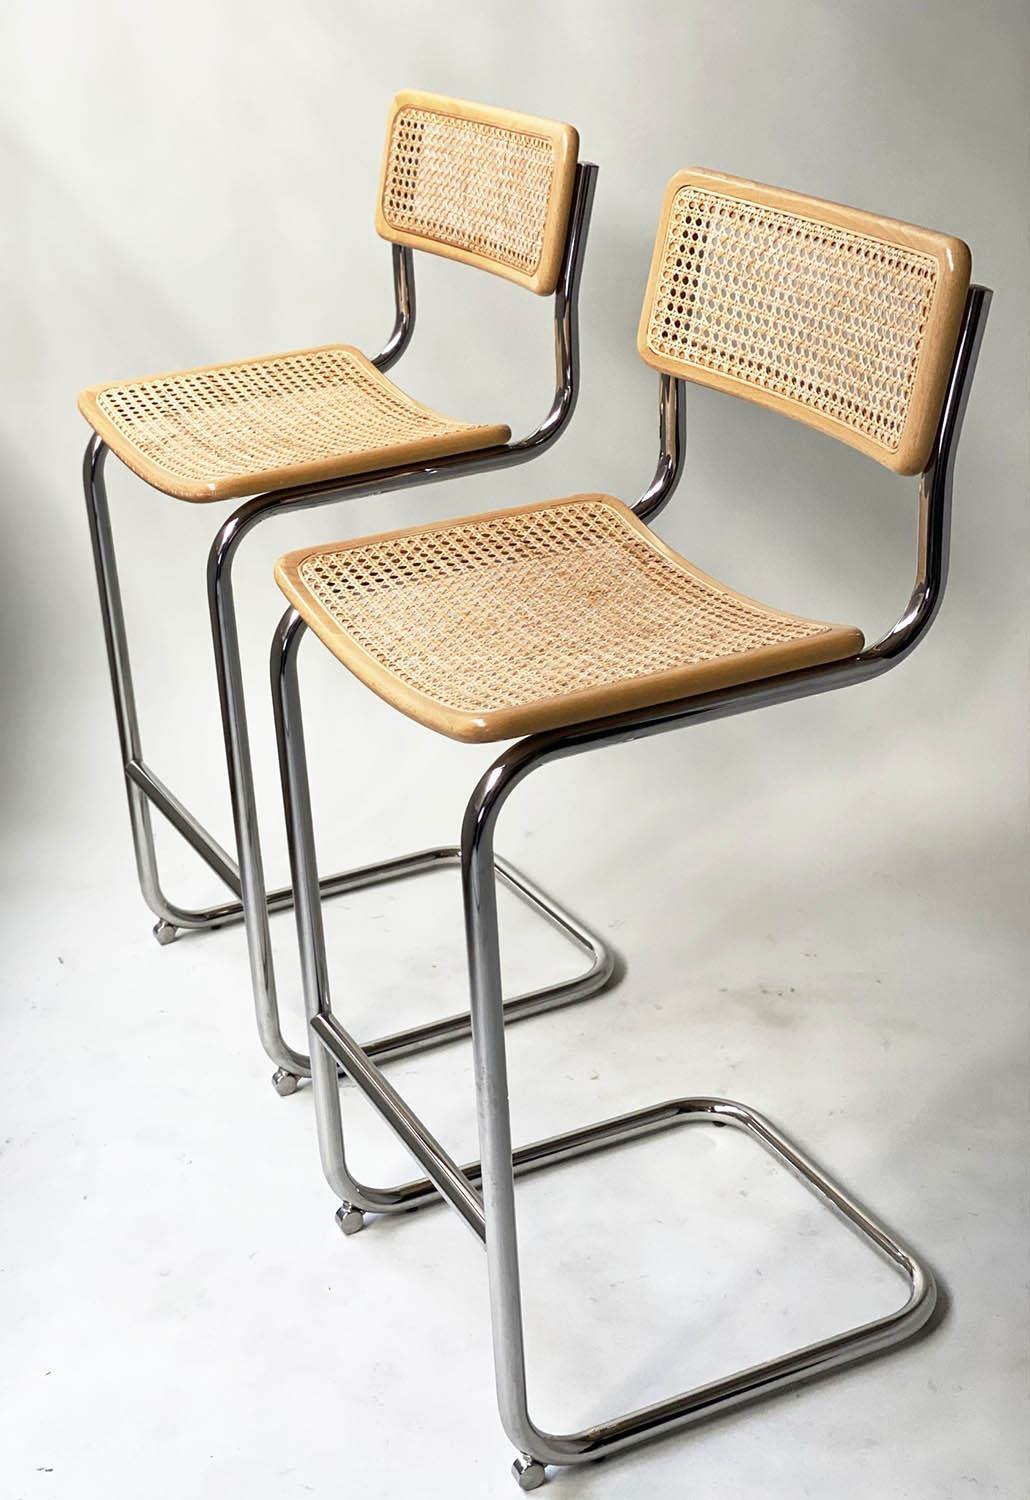 MARCEL BREUER INSPIRED BAR CHAIRS, a pair, Cesca style design, beechwood, cane panelled and chrome - Image 3 of 7